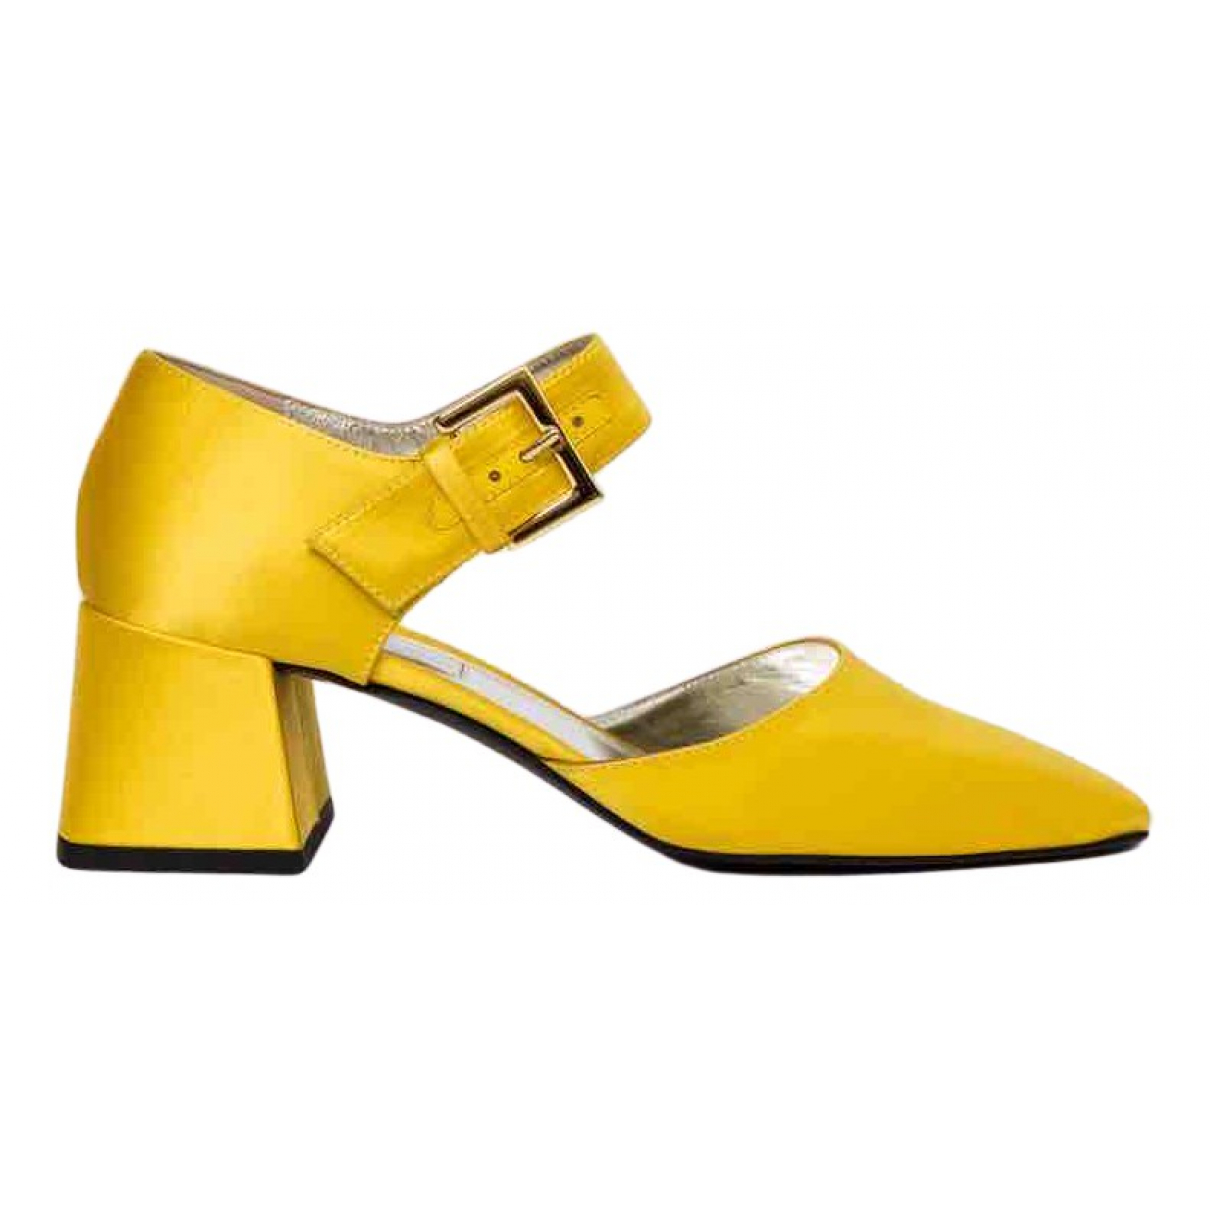 Suzanne Rae N Yellow Cloth Sandals for Women 39.5 EU